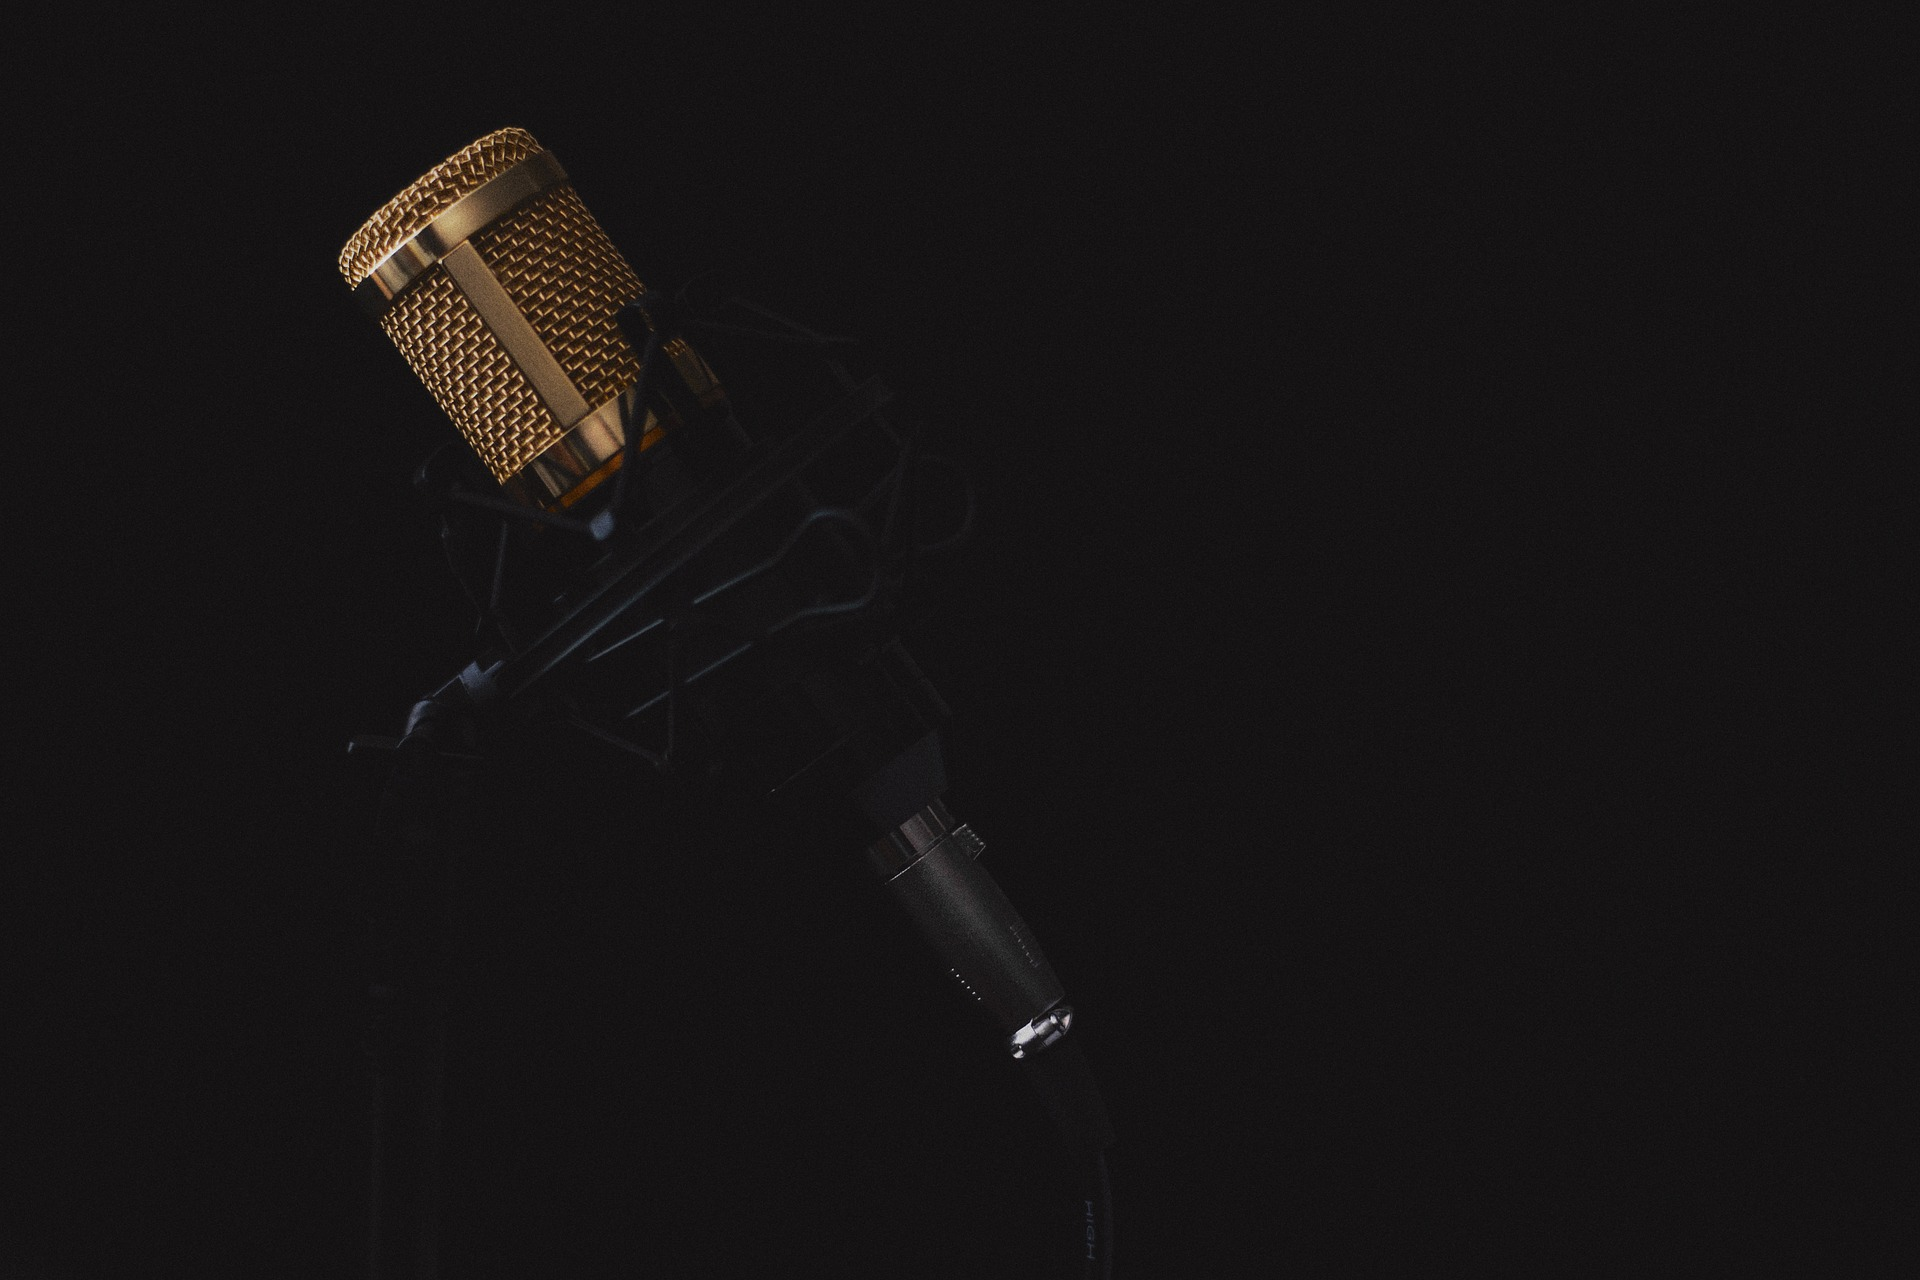 Gold colored microphone in stand.